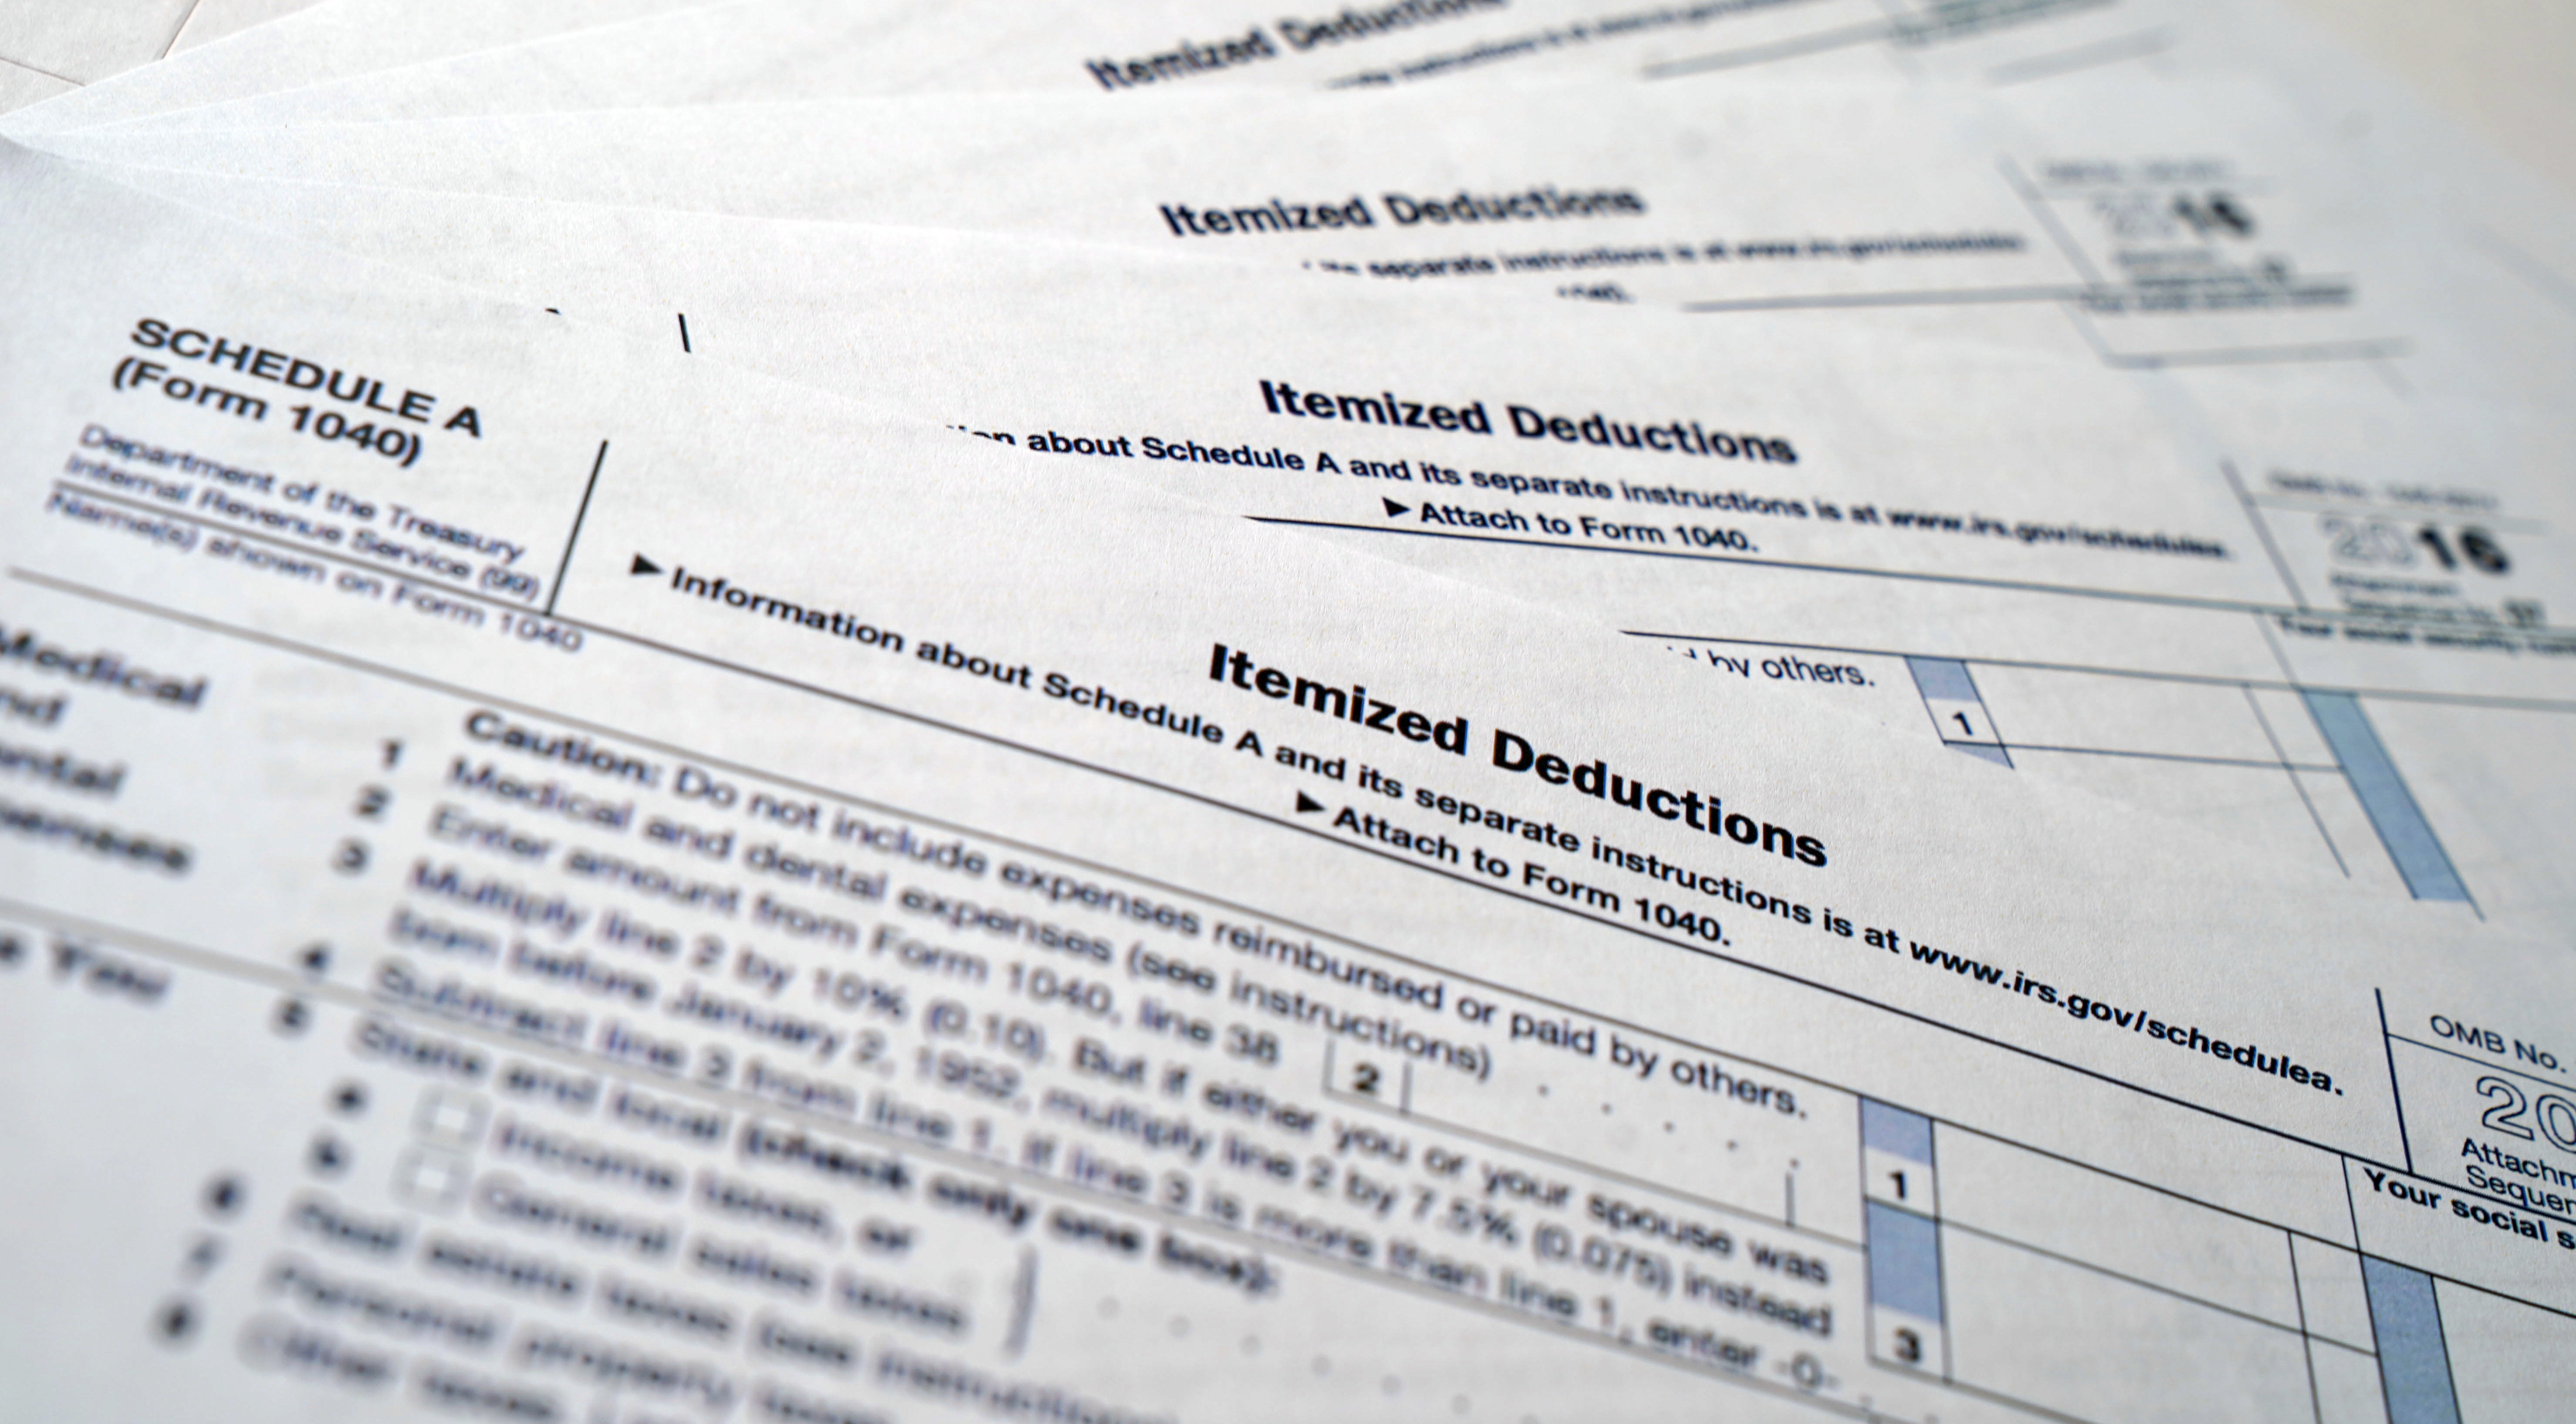 Tax day 2018: IRS extends deadline to file tax returns by a day to ...